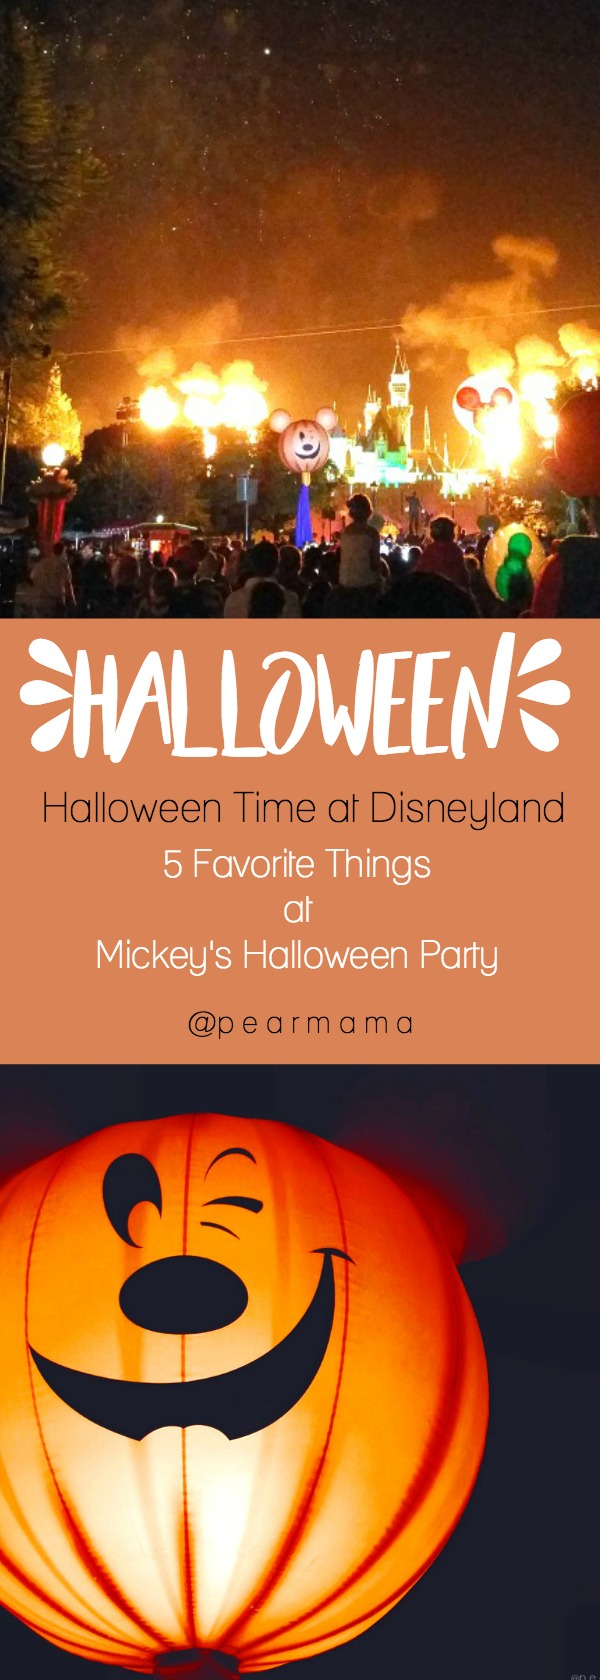 Halloween is the best time of year to visit the Disneyland Resort. Mickey's Halloween Party has become one of our favorite family traditions in October.